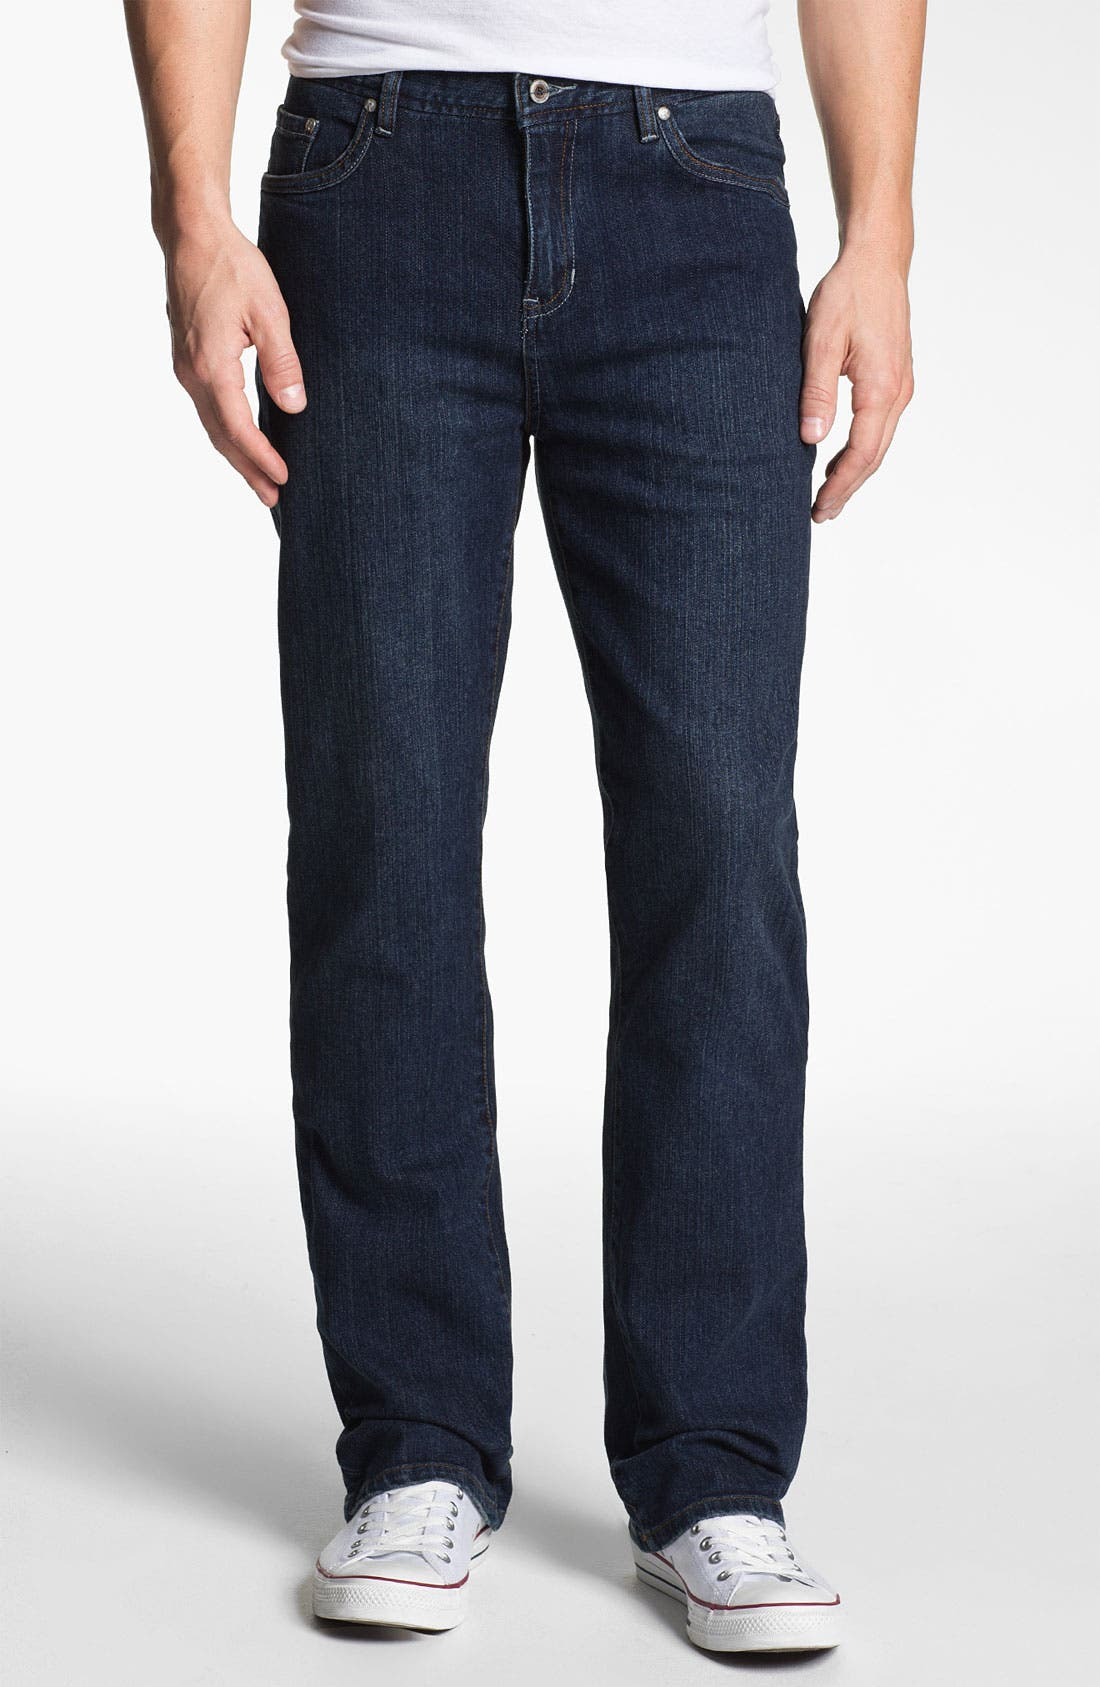 Alternate Image 1 Selected - ROAD 'Abbey Stretch' Relaxed Fit Straight Leg Jeans (Dark Wash)